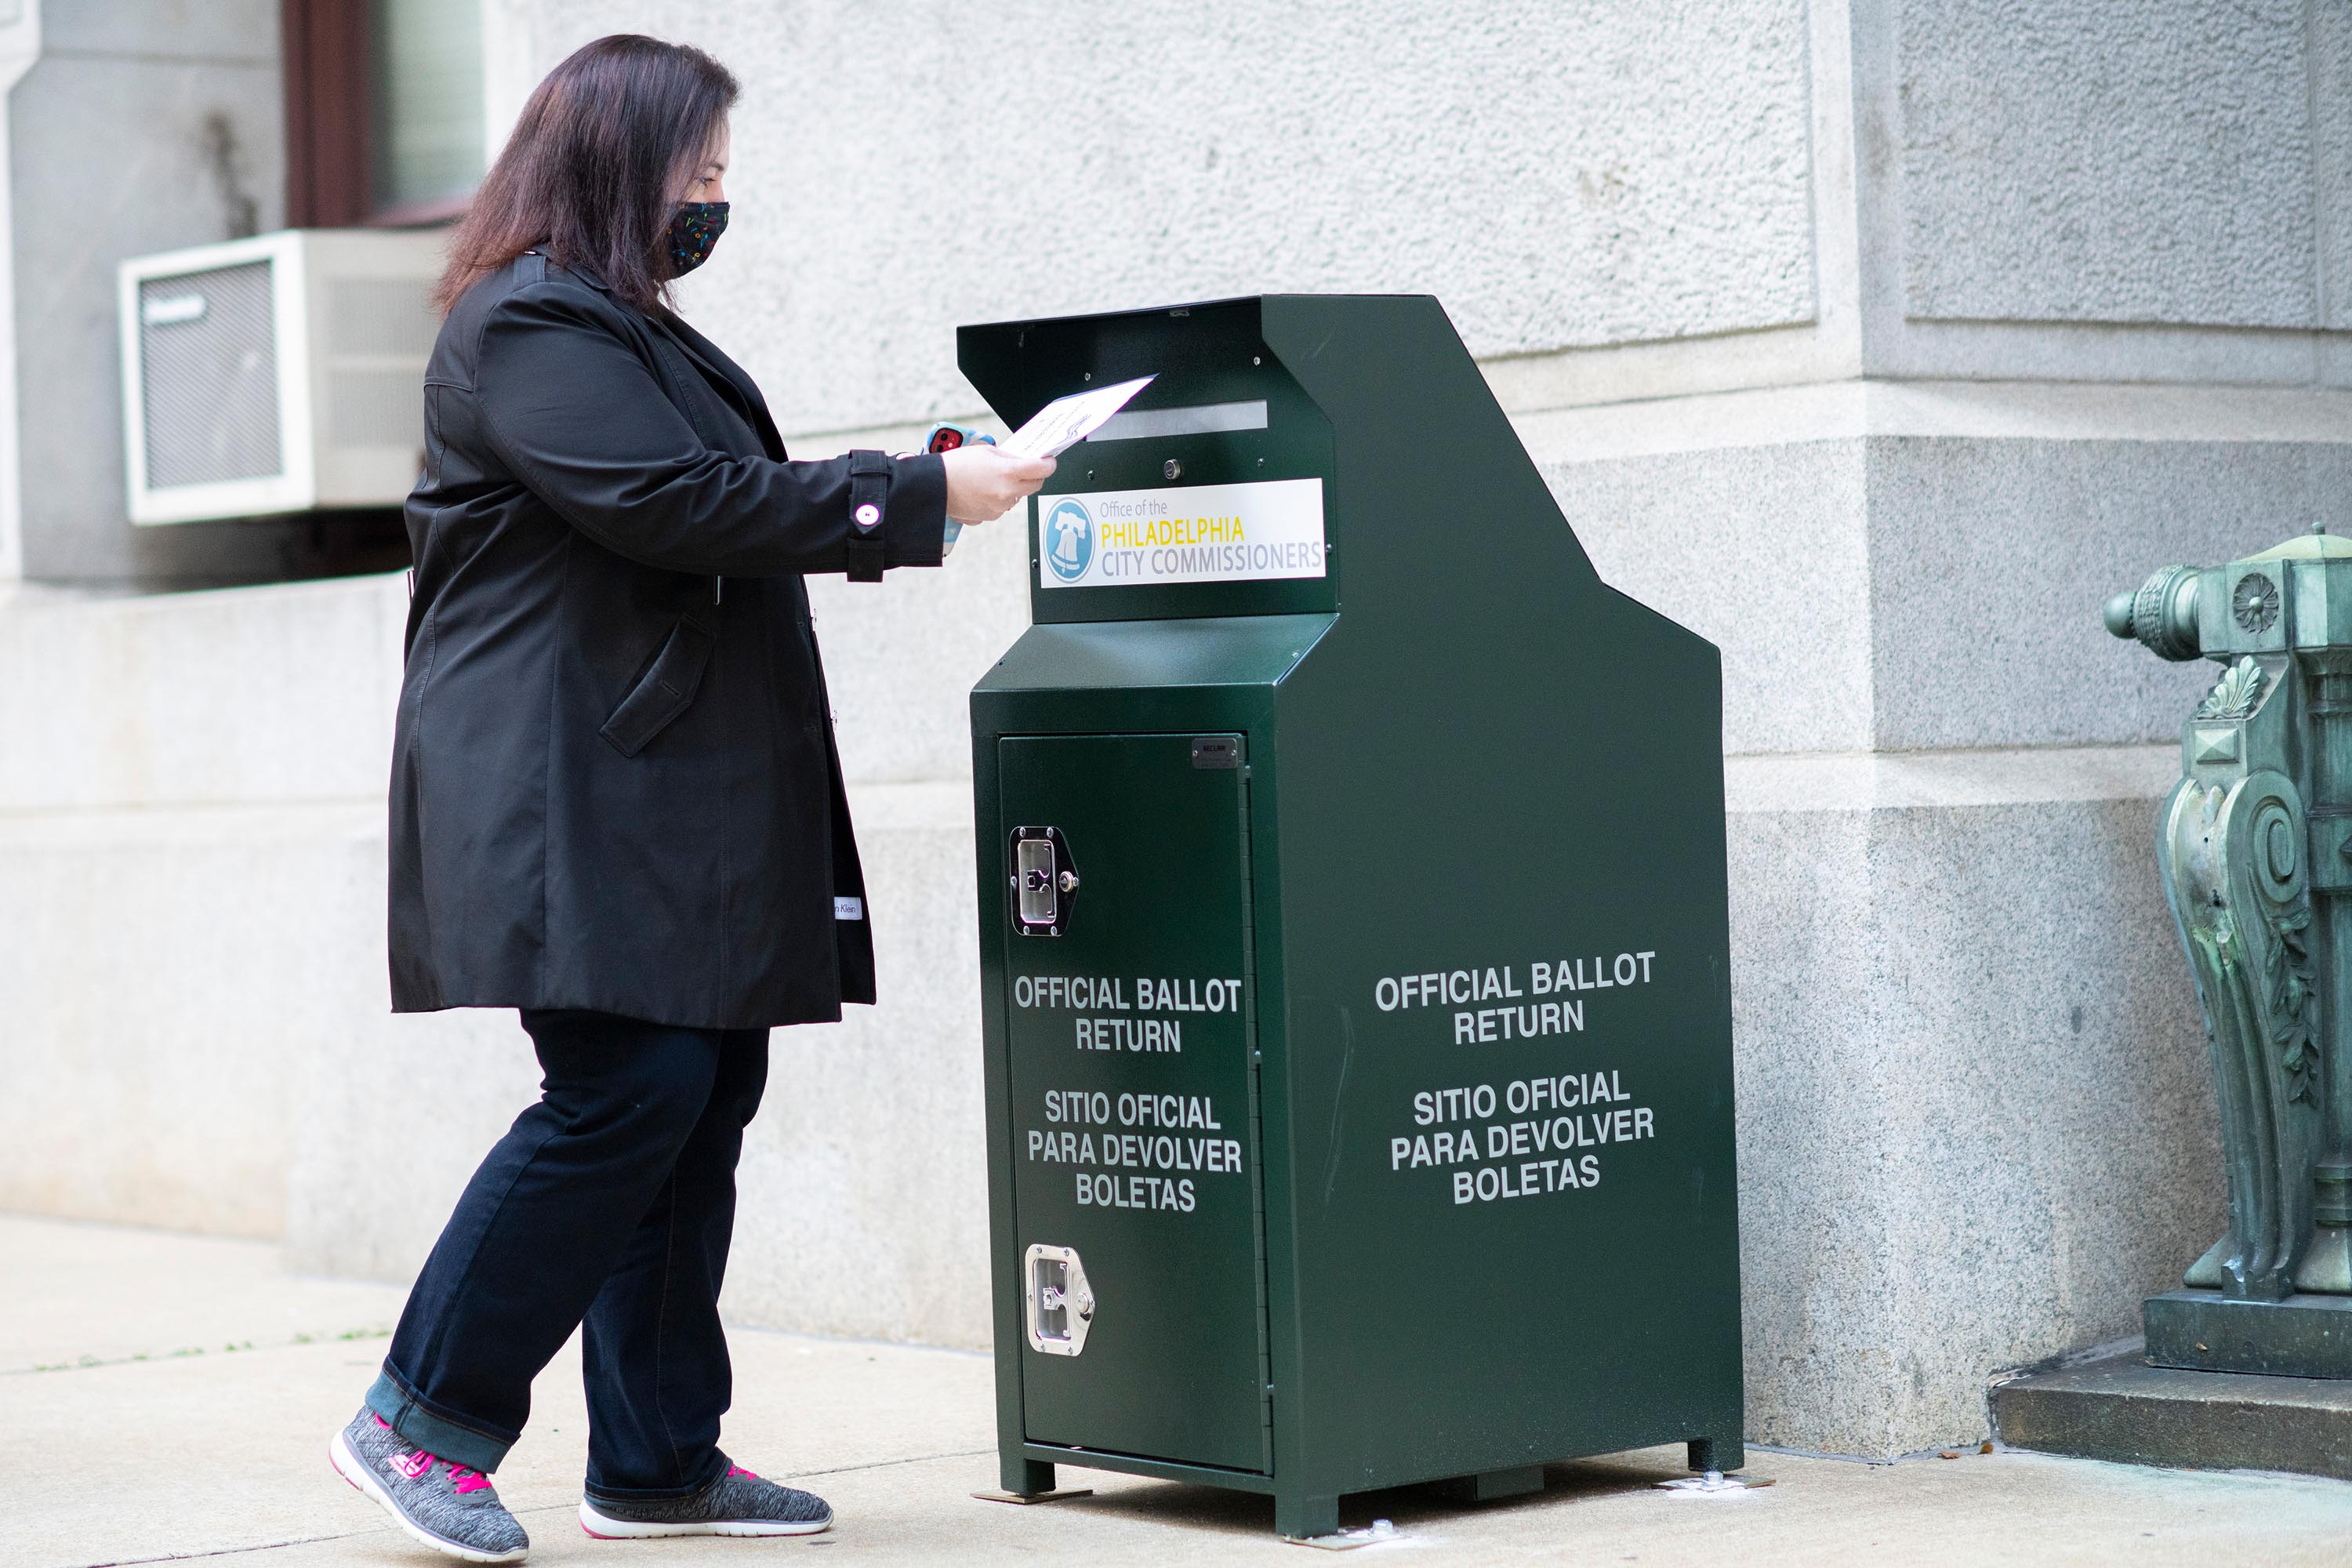 Pre-election voting surpasses all 2016 early ballots cast with 8 days left until Election Day